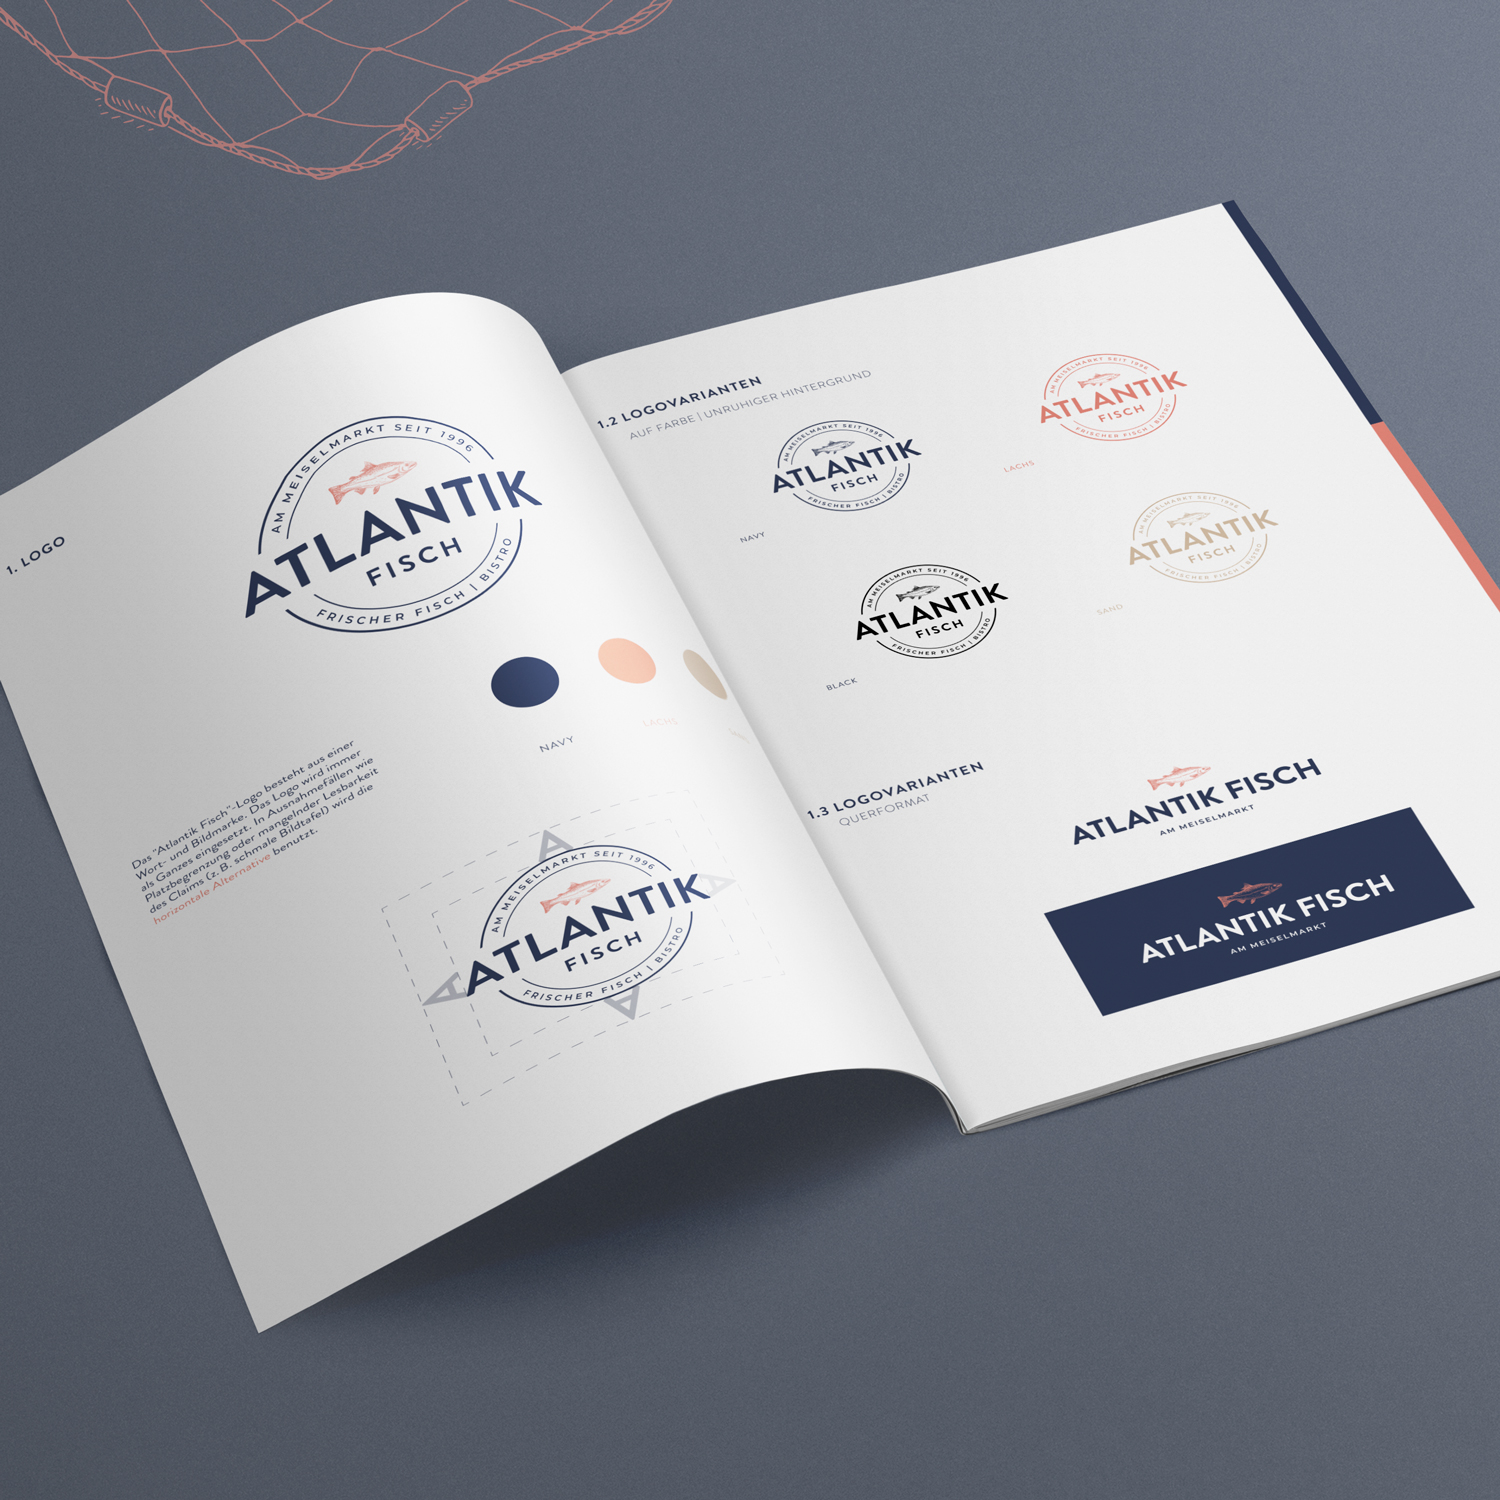 AtlantikFisch-manual-Mockup-01